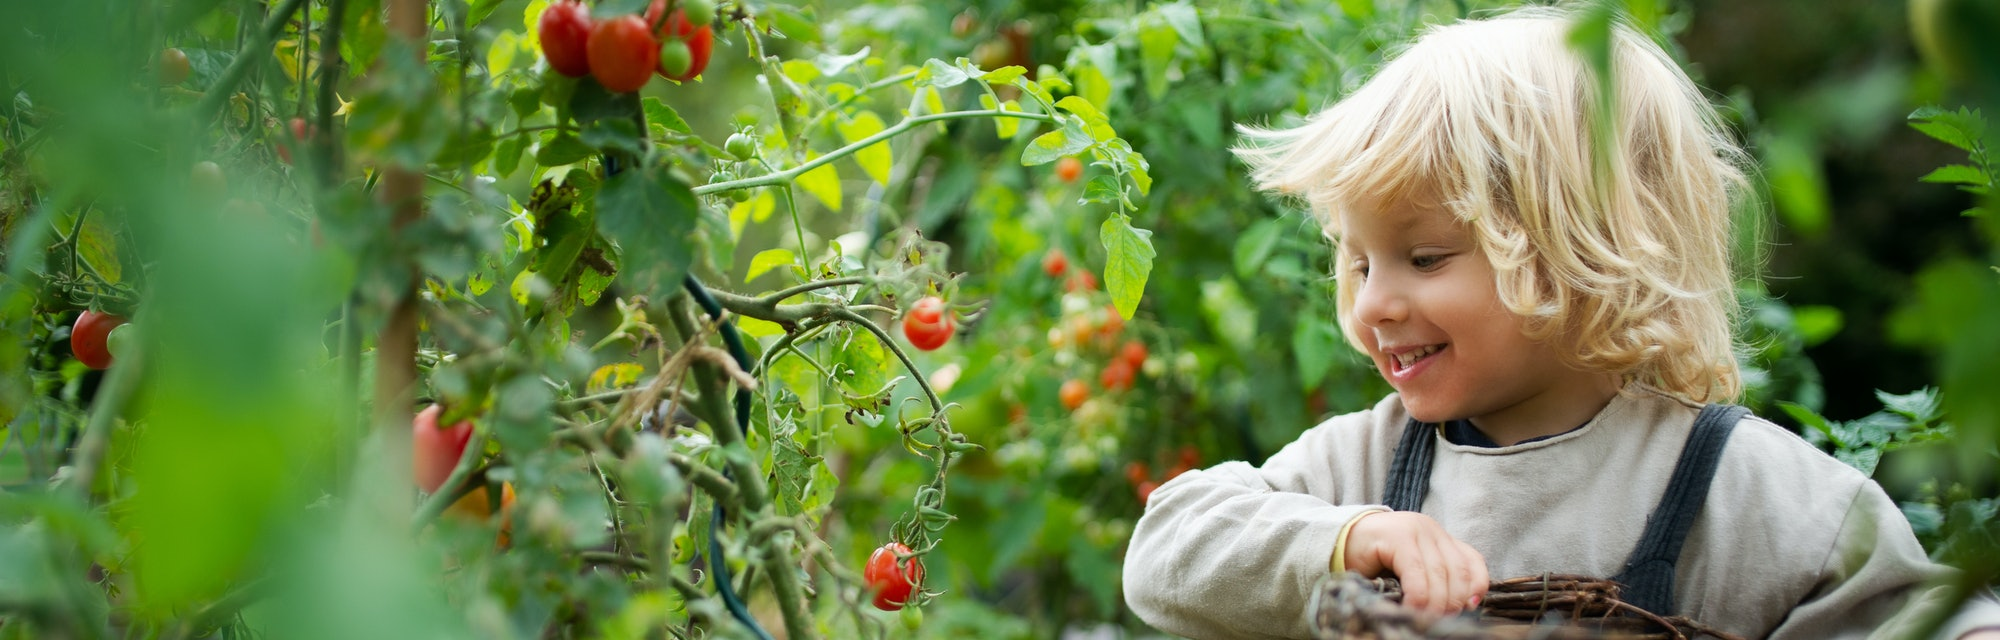 Happy small boy collecting cherry tomatoes outdoors in garden, sustainable lifestyle concept